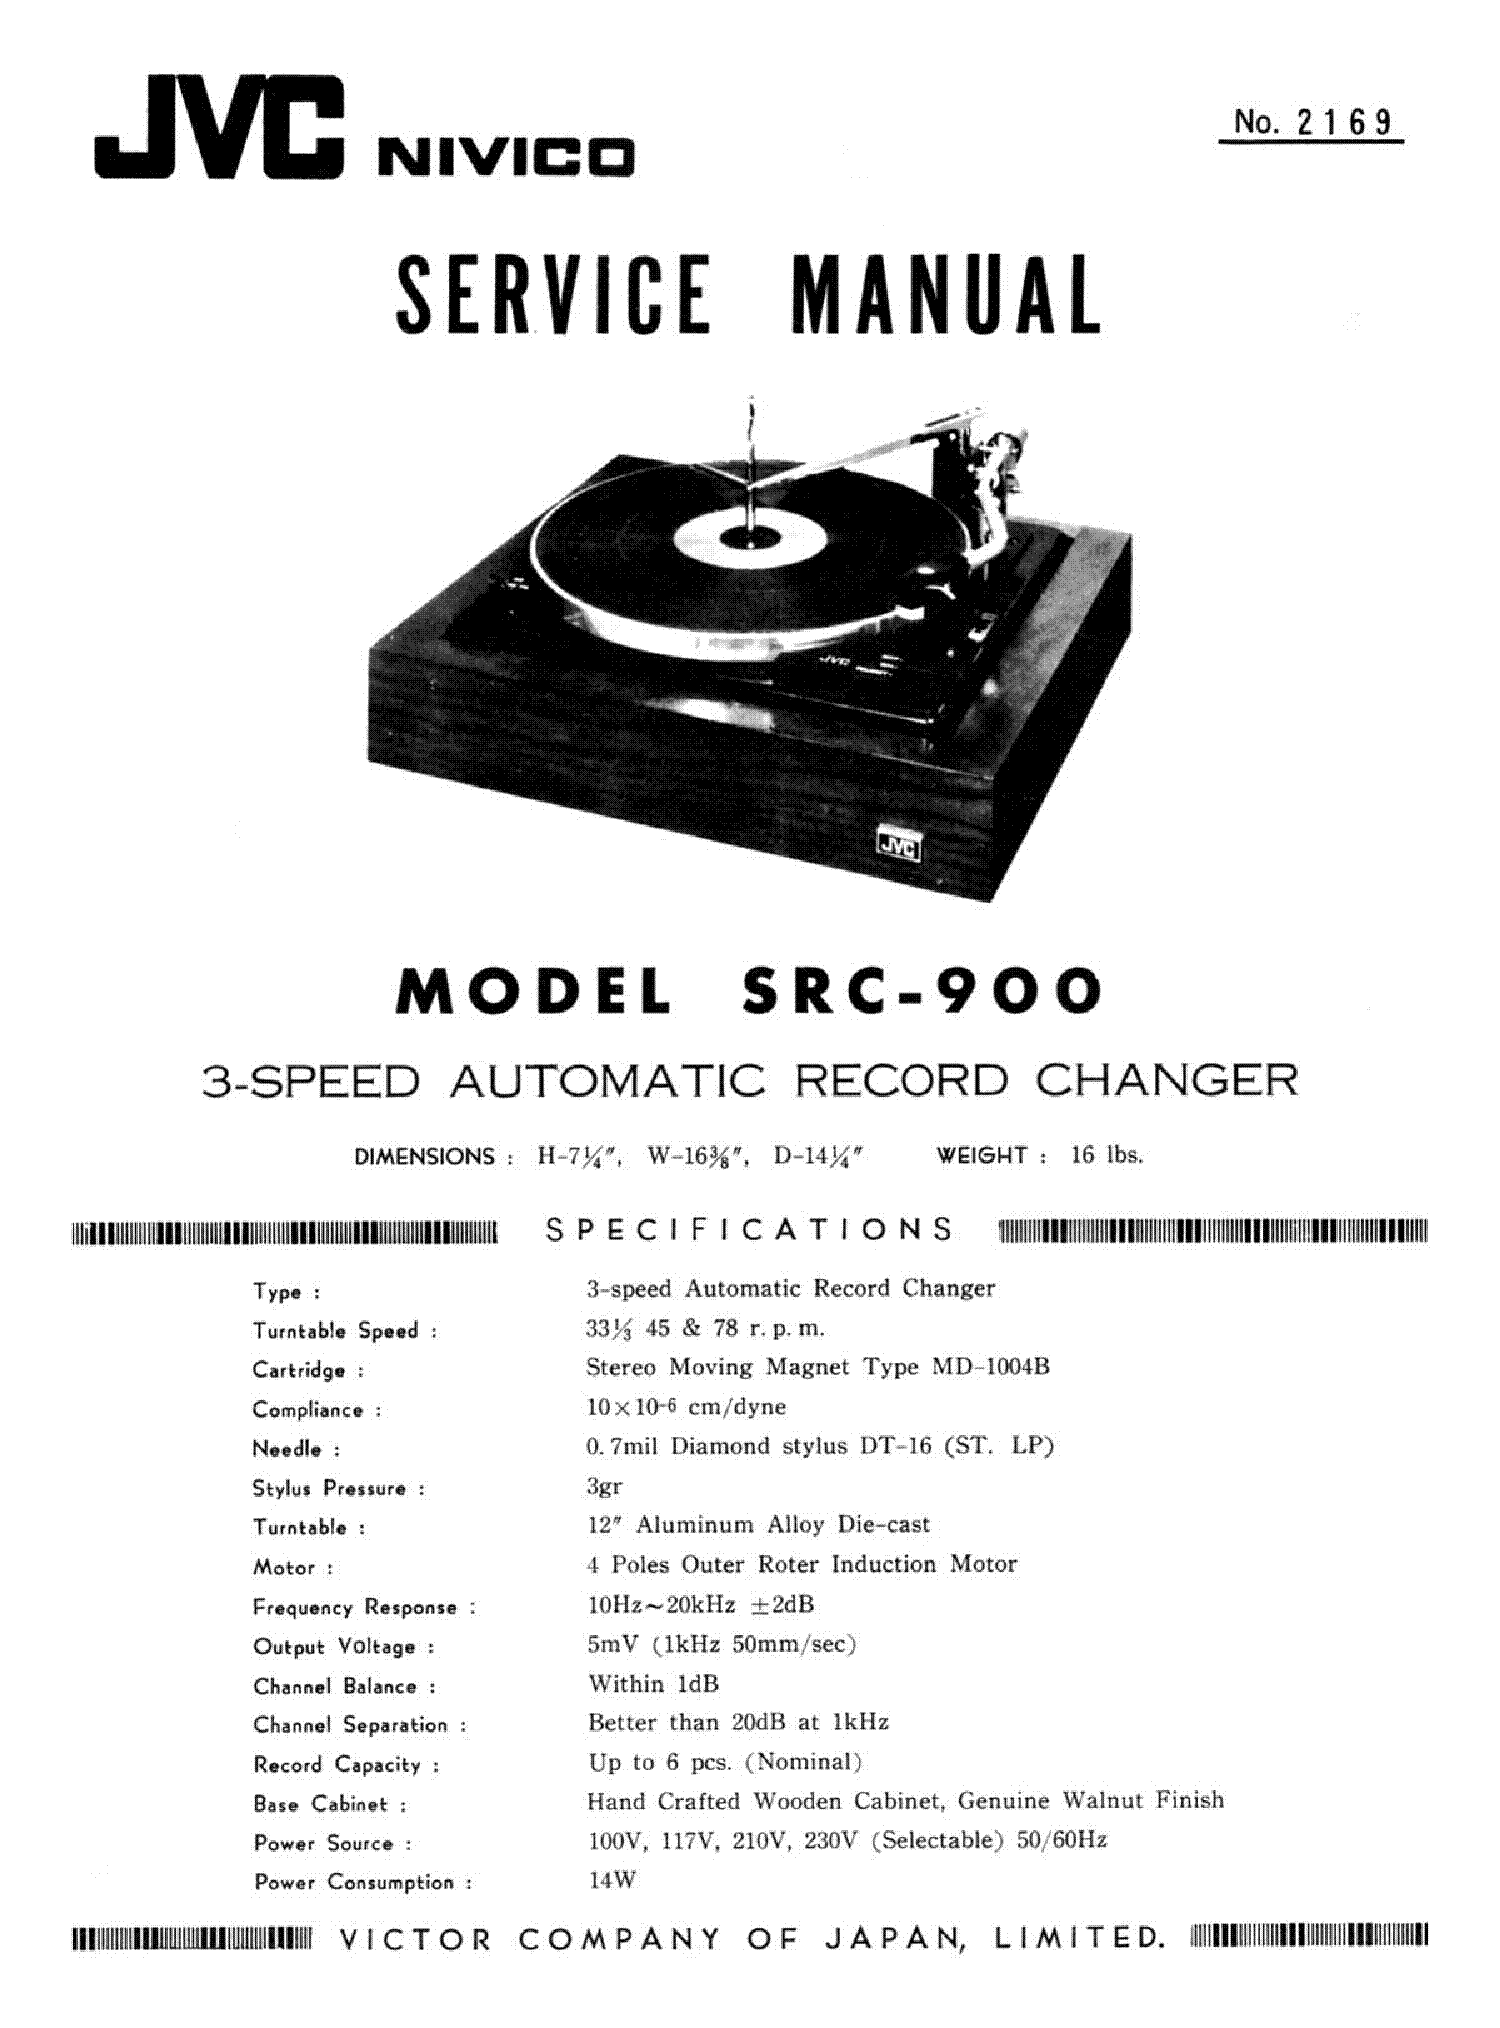 JVC NIVICO SRC-900 3-SPEED AUTOMATIC RECORD CHANGER SM service manual (1st